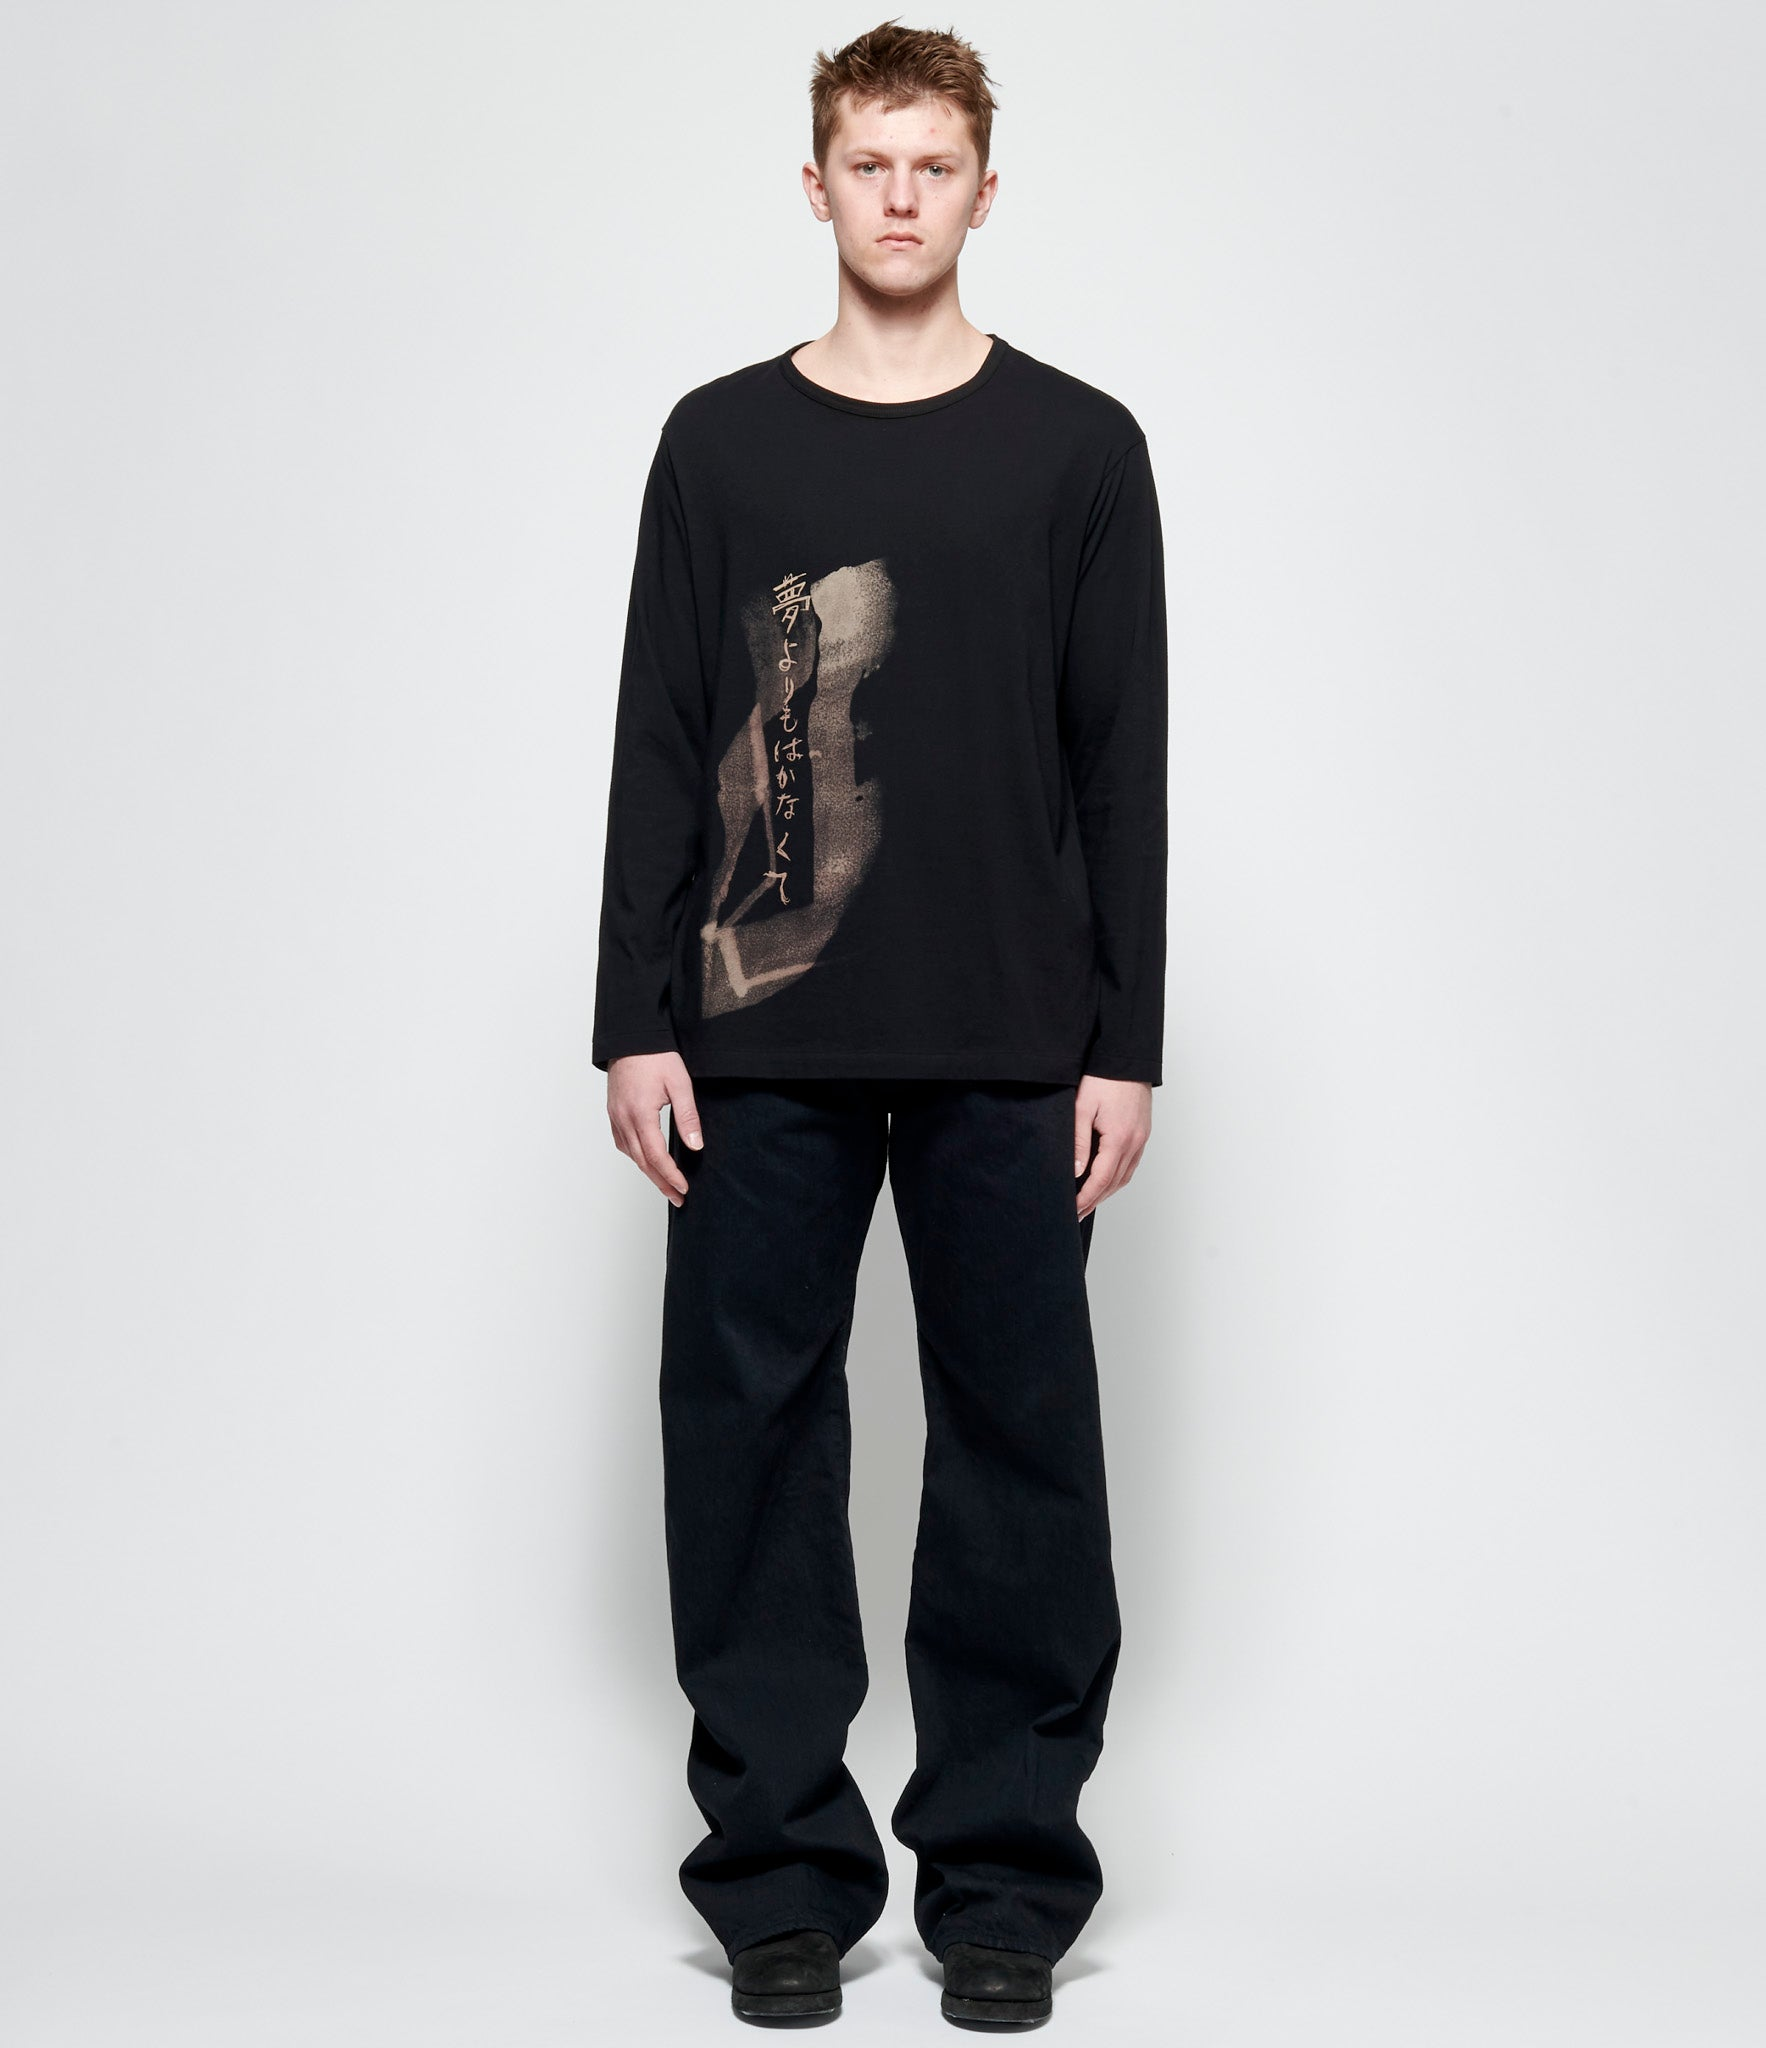 Yohji Yamamoto Pour Homme More Than Dream PT RN Long Sleeve T-Shirt